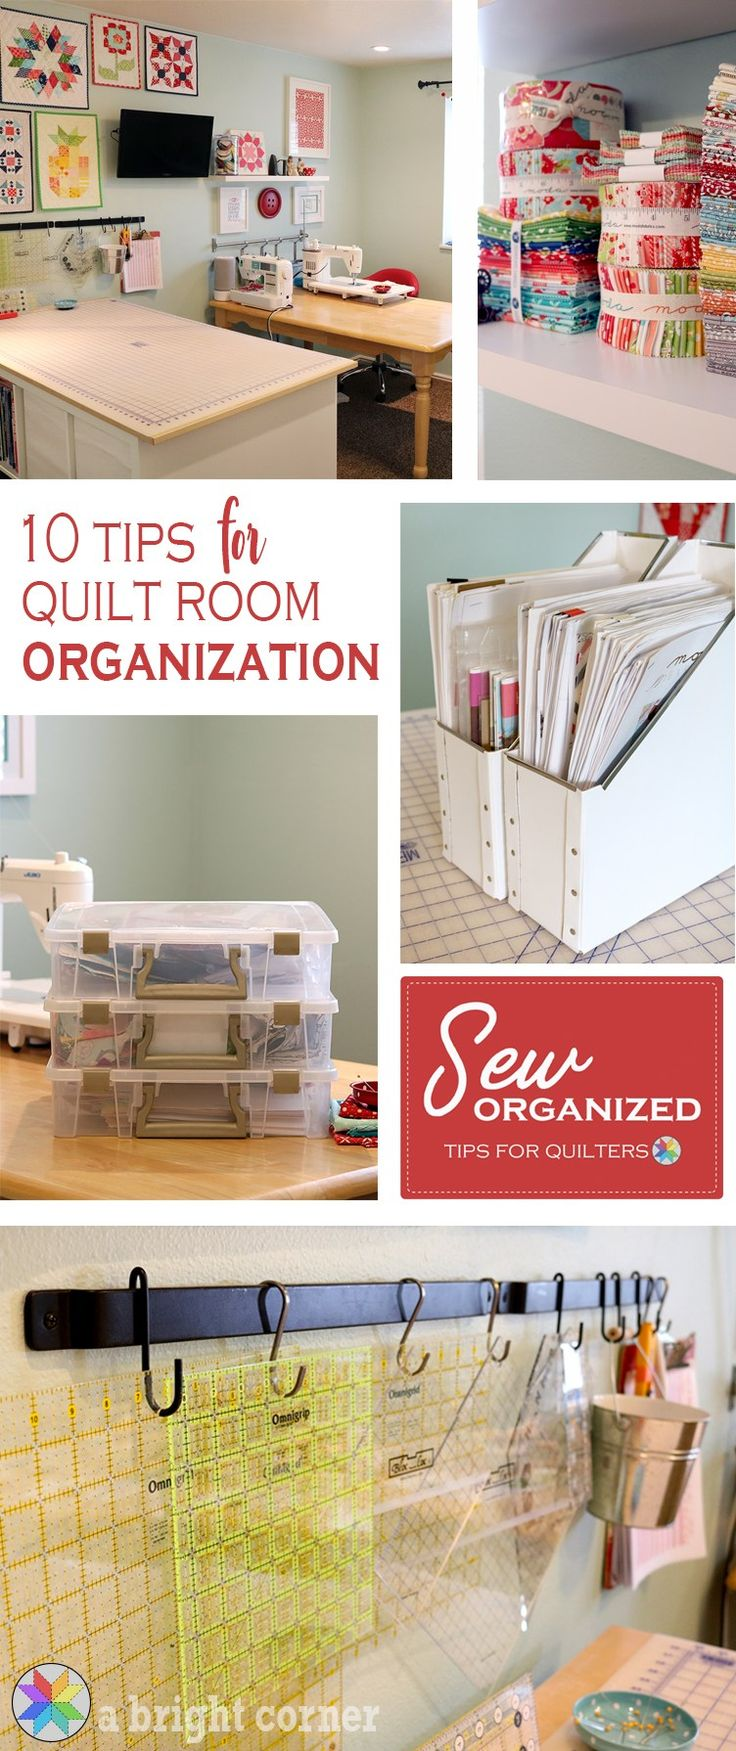 10 Tips for Quilt Room Organization - lots of helpful information to get your quilt studio in tiptop shape. (scheduled via http://www.tailwindapp.com?utm_source=pinterest&utm_medium=twpin)